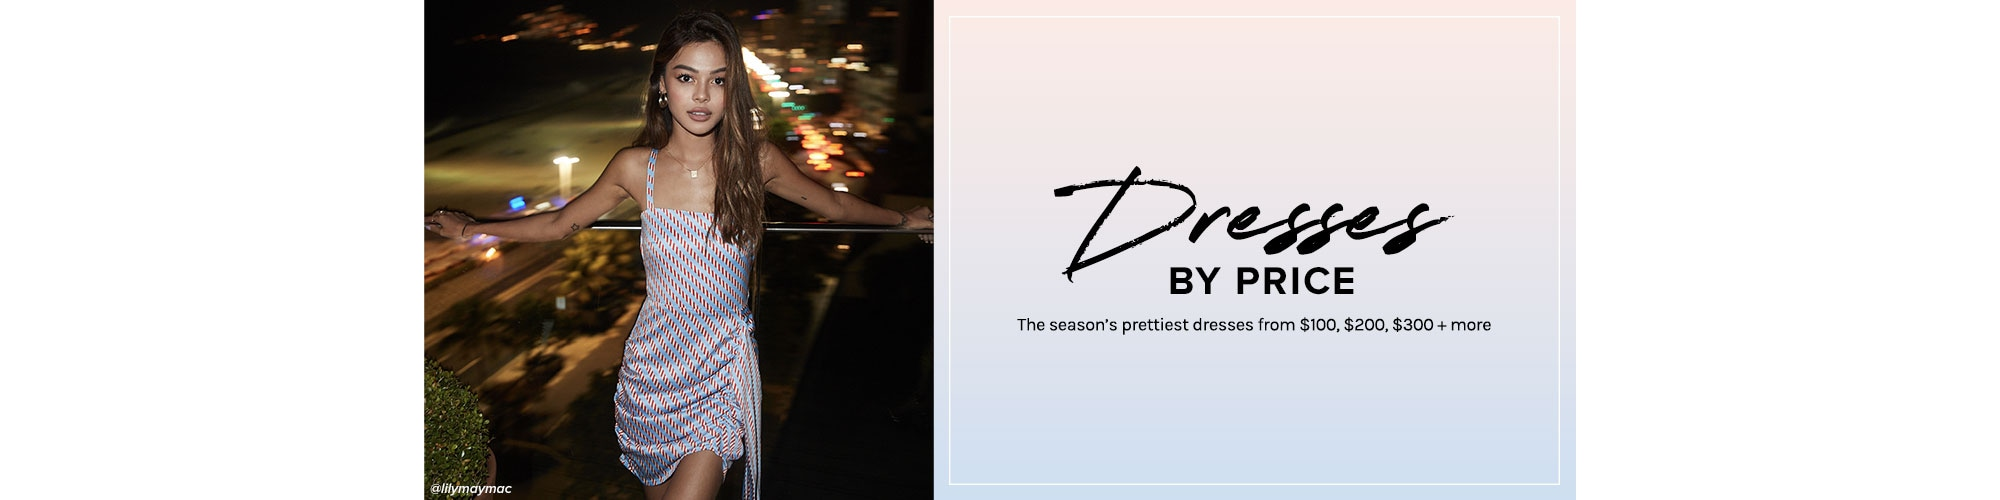 Dresses By Price. The season\u2019s prettiest dresses from $100, $200, $300 + more.